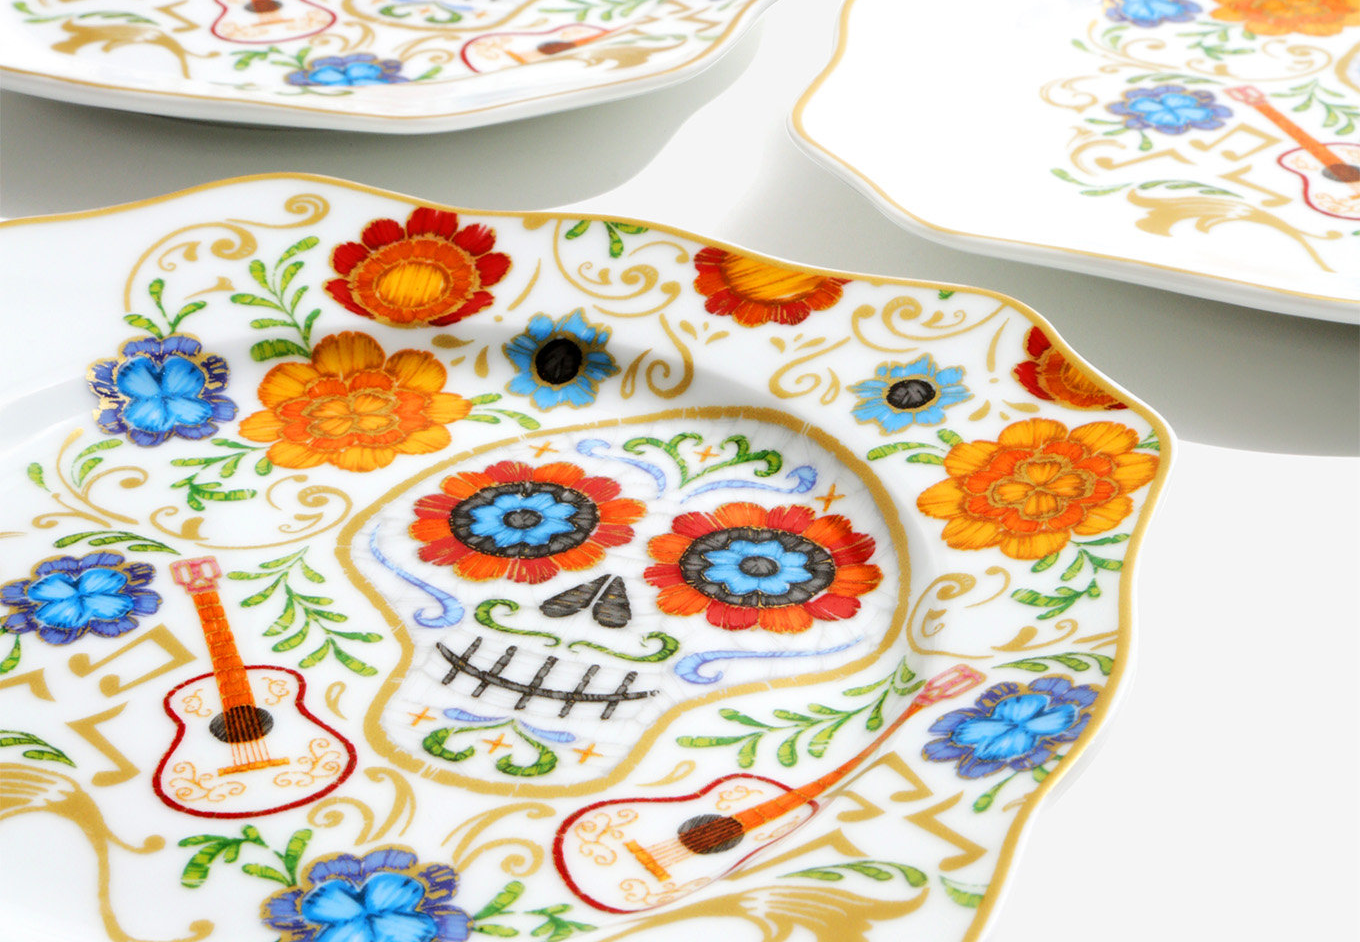 Disney Pixar Coco Floral Plate Set  sc 1 st  The Disney Fashionista & Celebrate and Feast with the Disney Pixar Coco Floral Plate Set